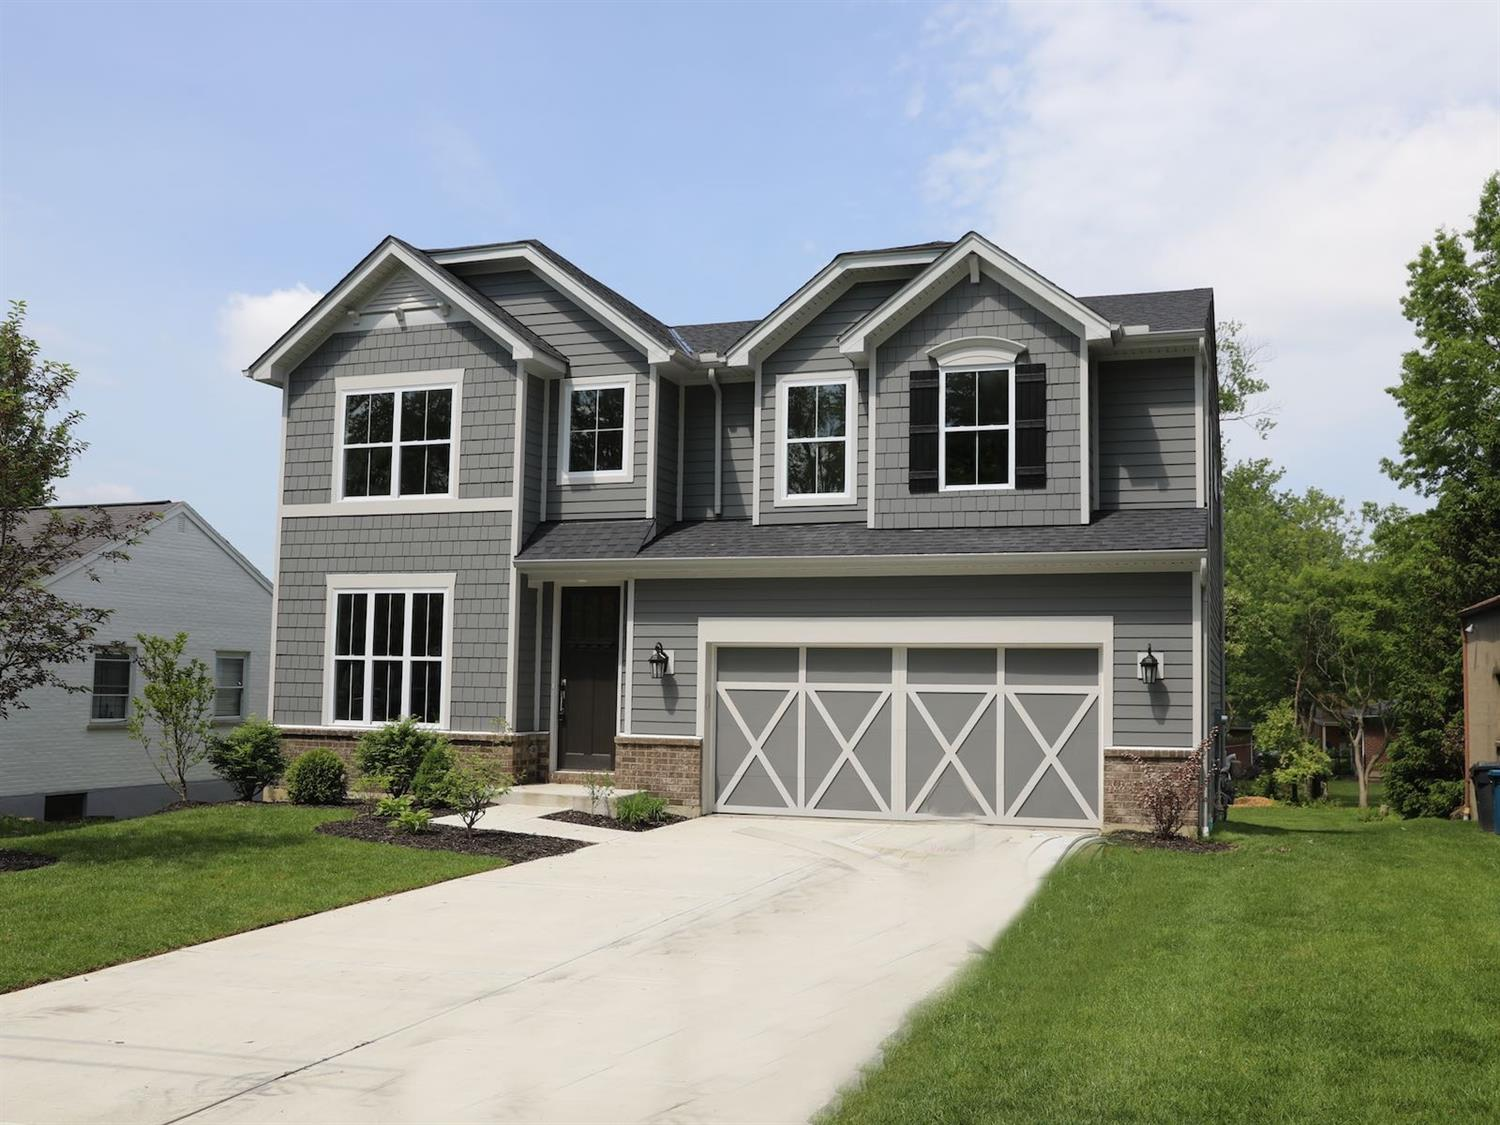 Photo 1 for 7255 Rita Ln Madeira, OH 45243